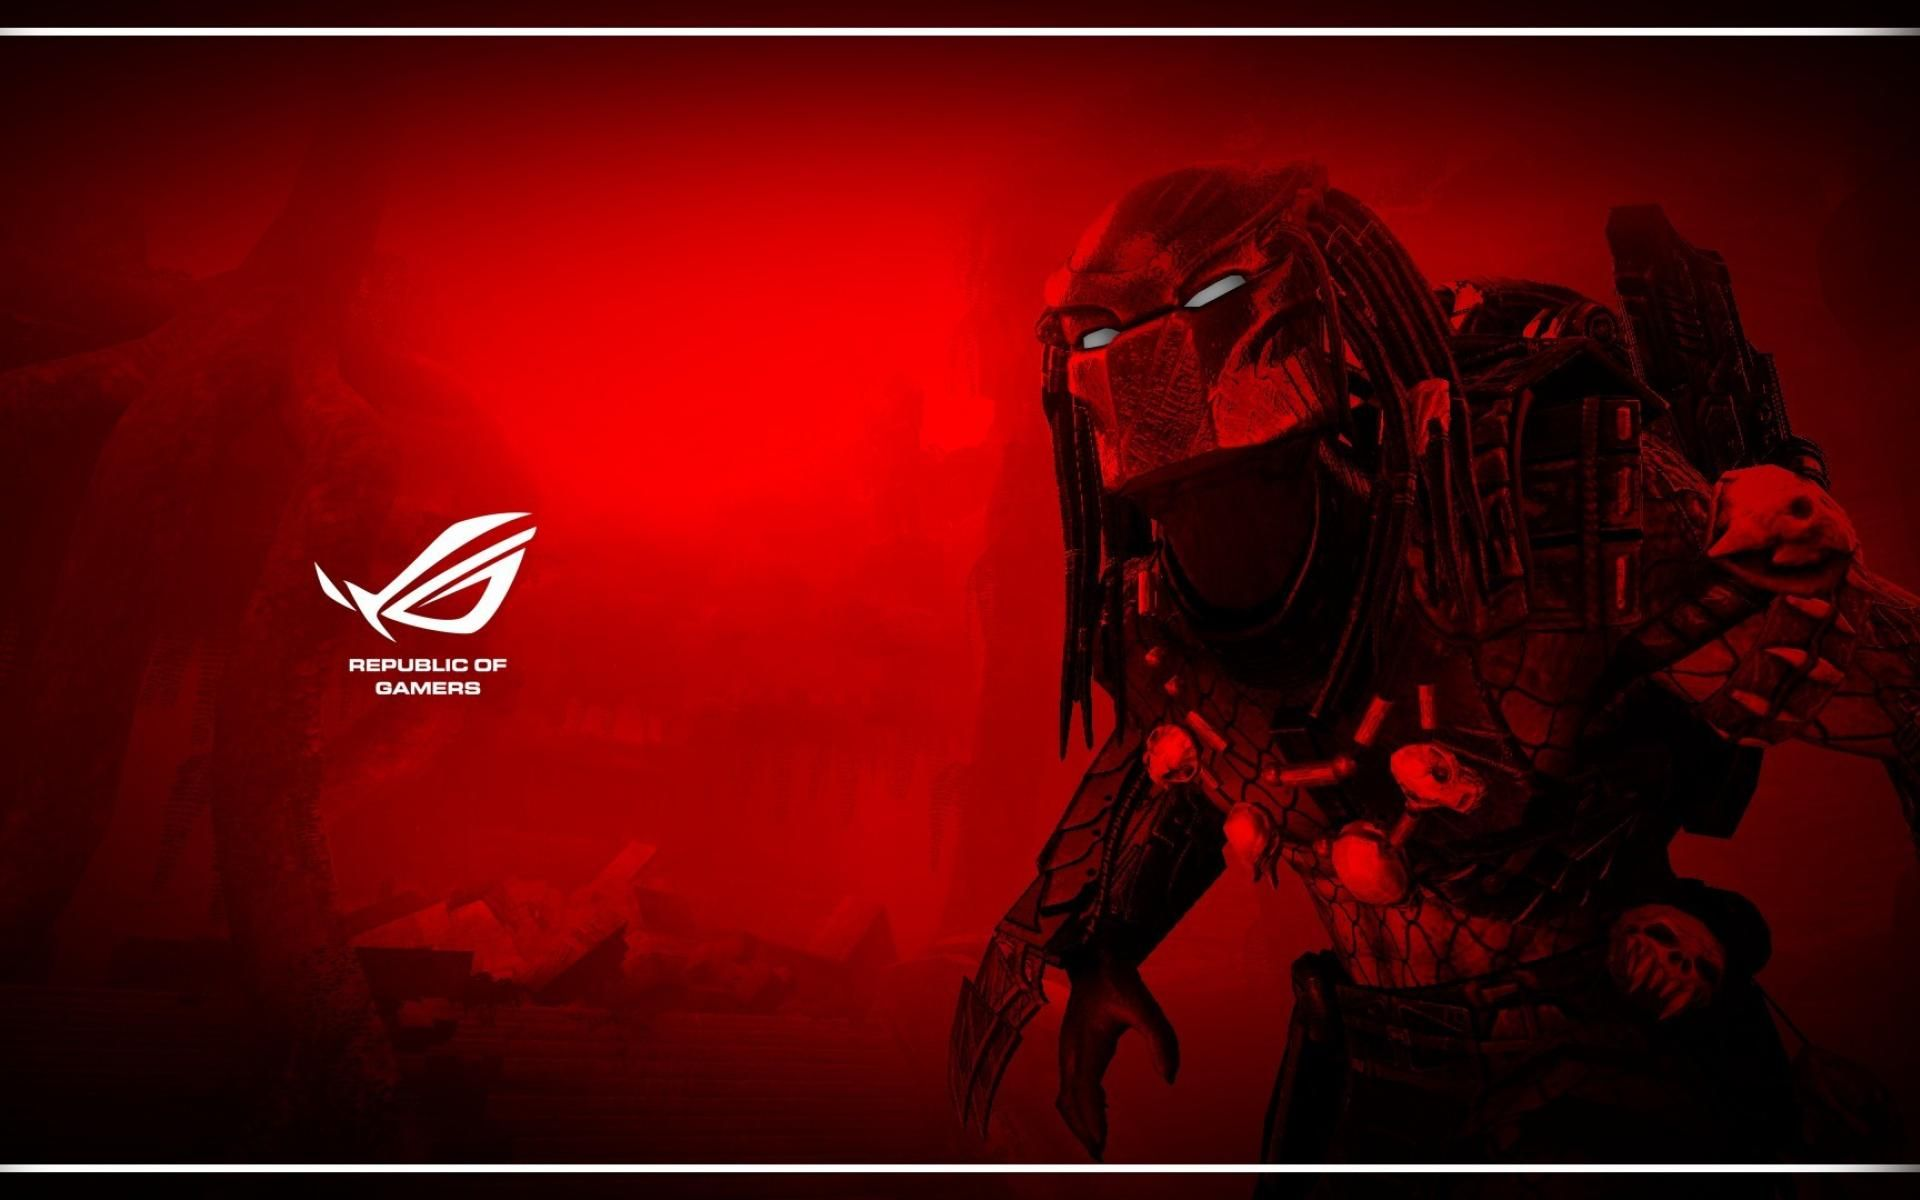 Red Gaming Wallpapers - Top Free Red Gaming Backgrounds ...